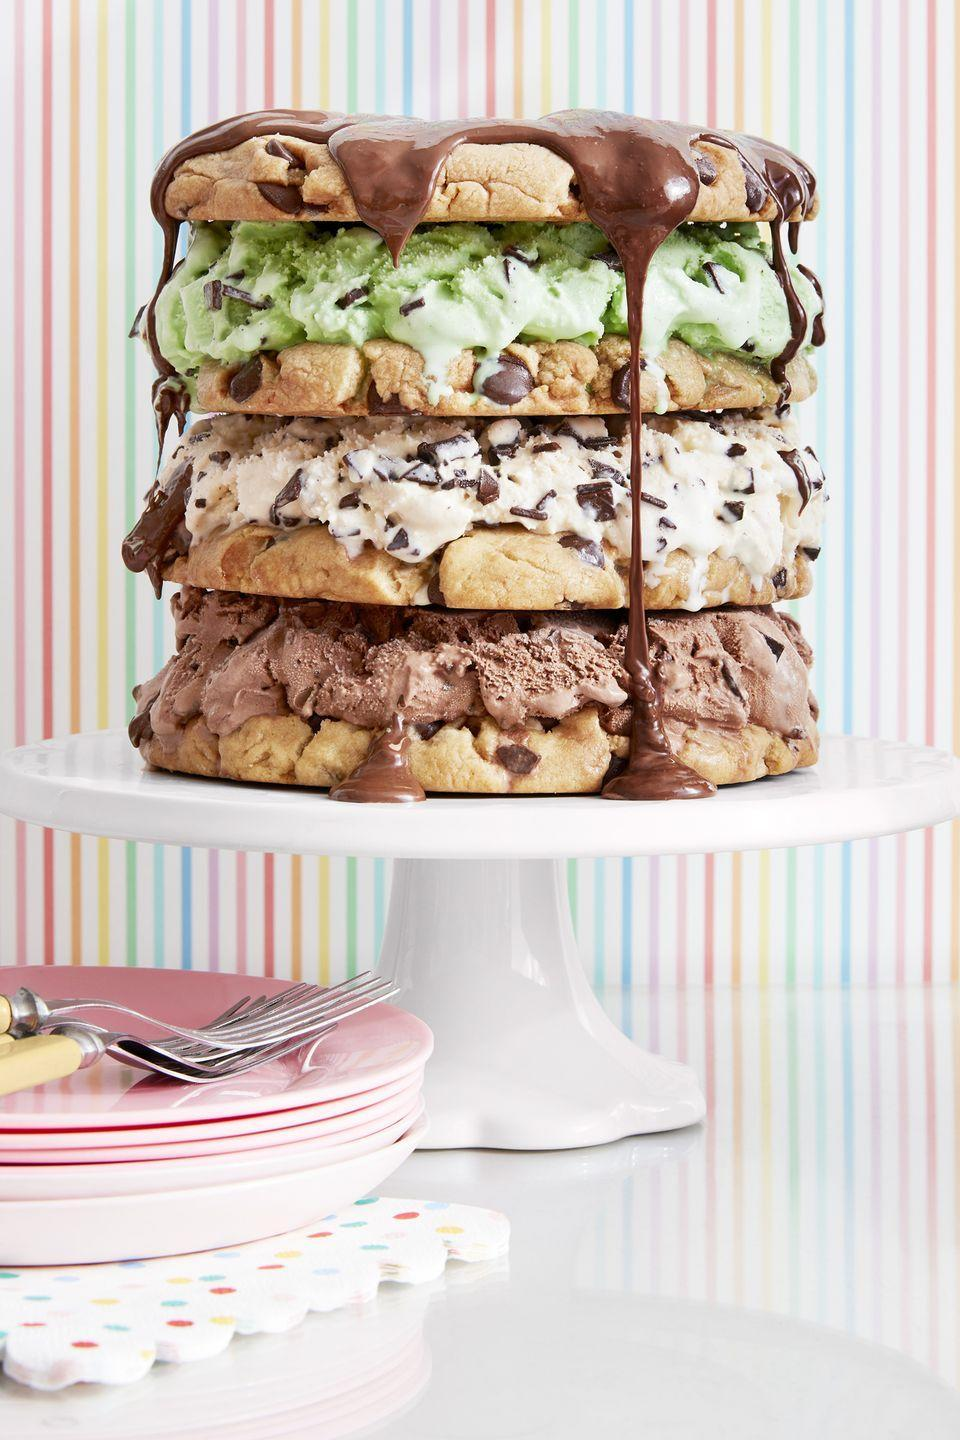 """<p>Mix and match ice cream flavors—pistachio, chocolate, vanilla, and more!—for a multi-colored display. </p><p><strong><a href=""""https://www.countryliving.com/food-drinks/a20748234/chocolate-chip-cookie-cake-recipe/"""" rel=""""nofollow noopener"""" target=""""_blank"""" data-ylk=""""slk:Get the recipe"""" class=""""link rapid-noclick-resp"""">Get the recipe</a>.</strong></p>"""